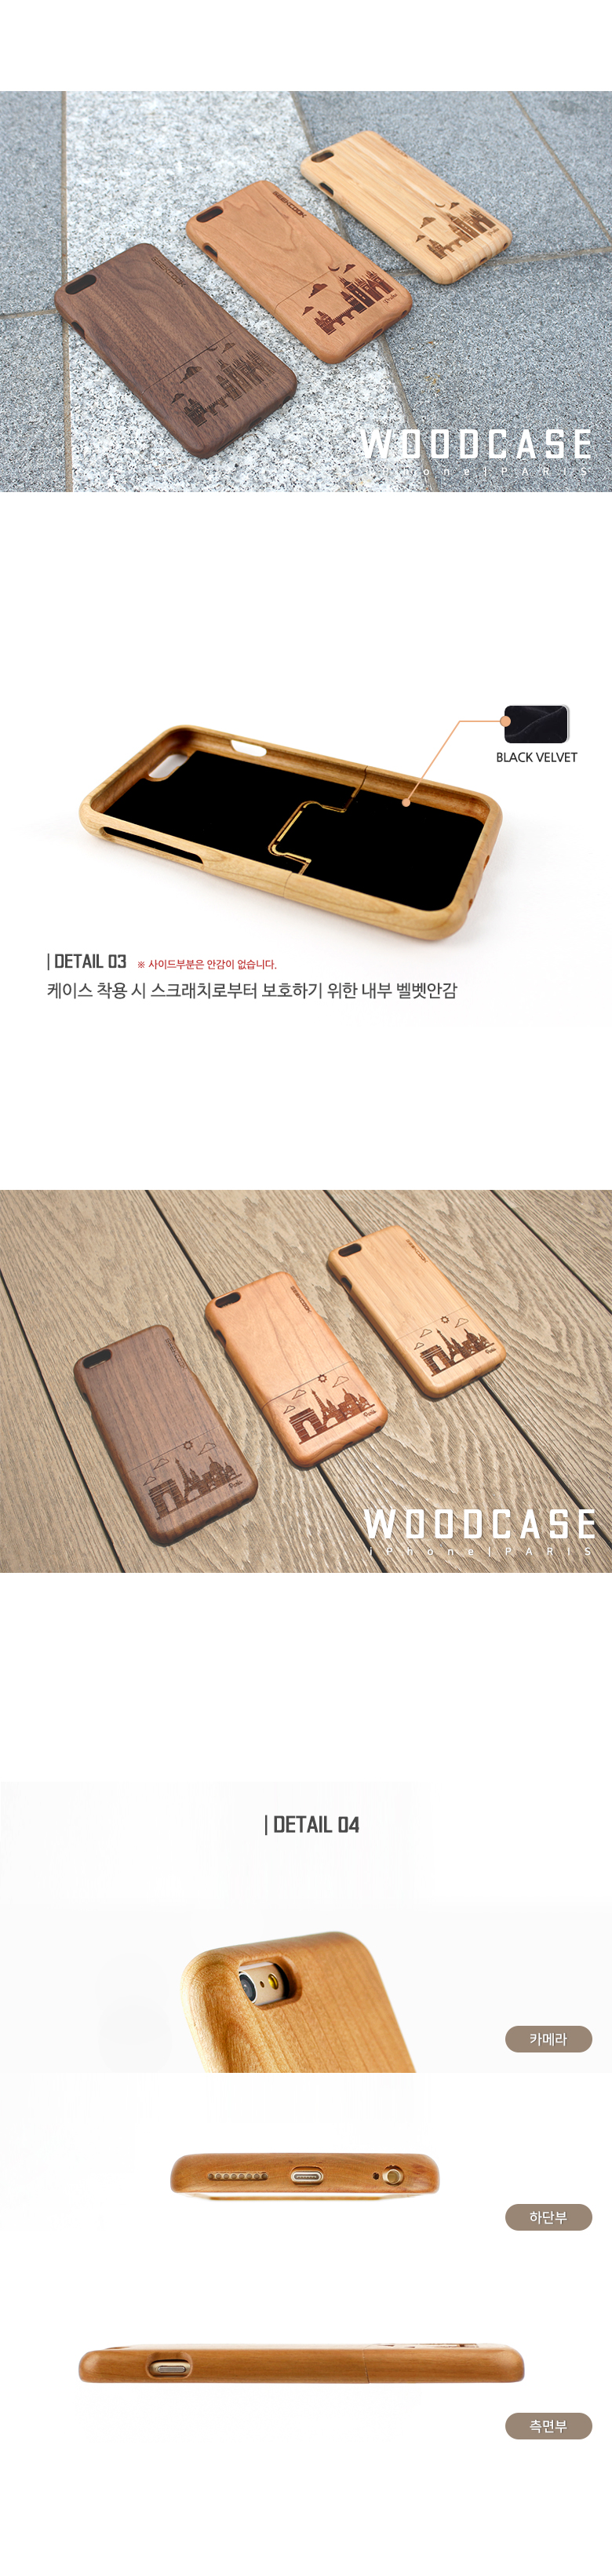 [ BISKET ] iPhone 6/6plus Landmark Wood Case Paris